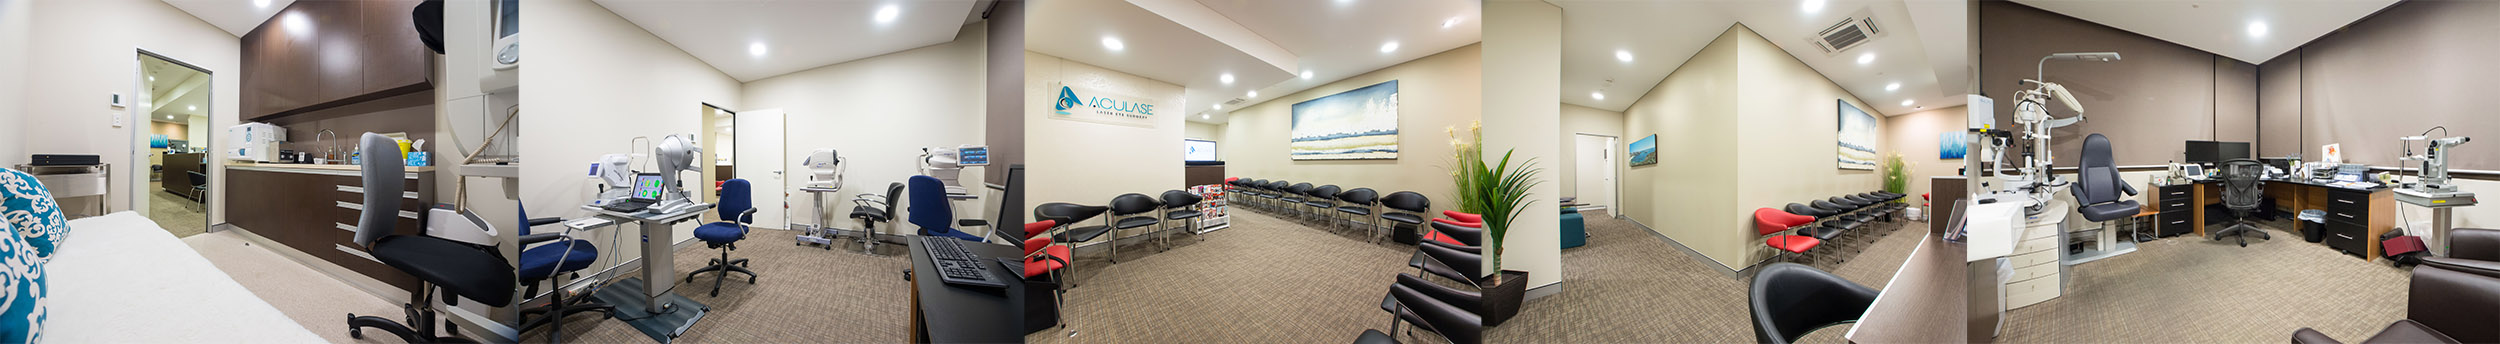 Aculase Clinic - showing waiting area, consultation room and assessment rooms